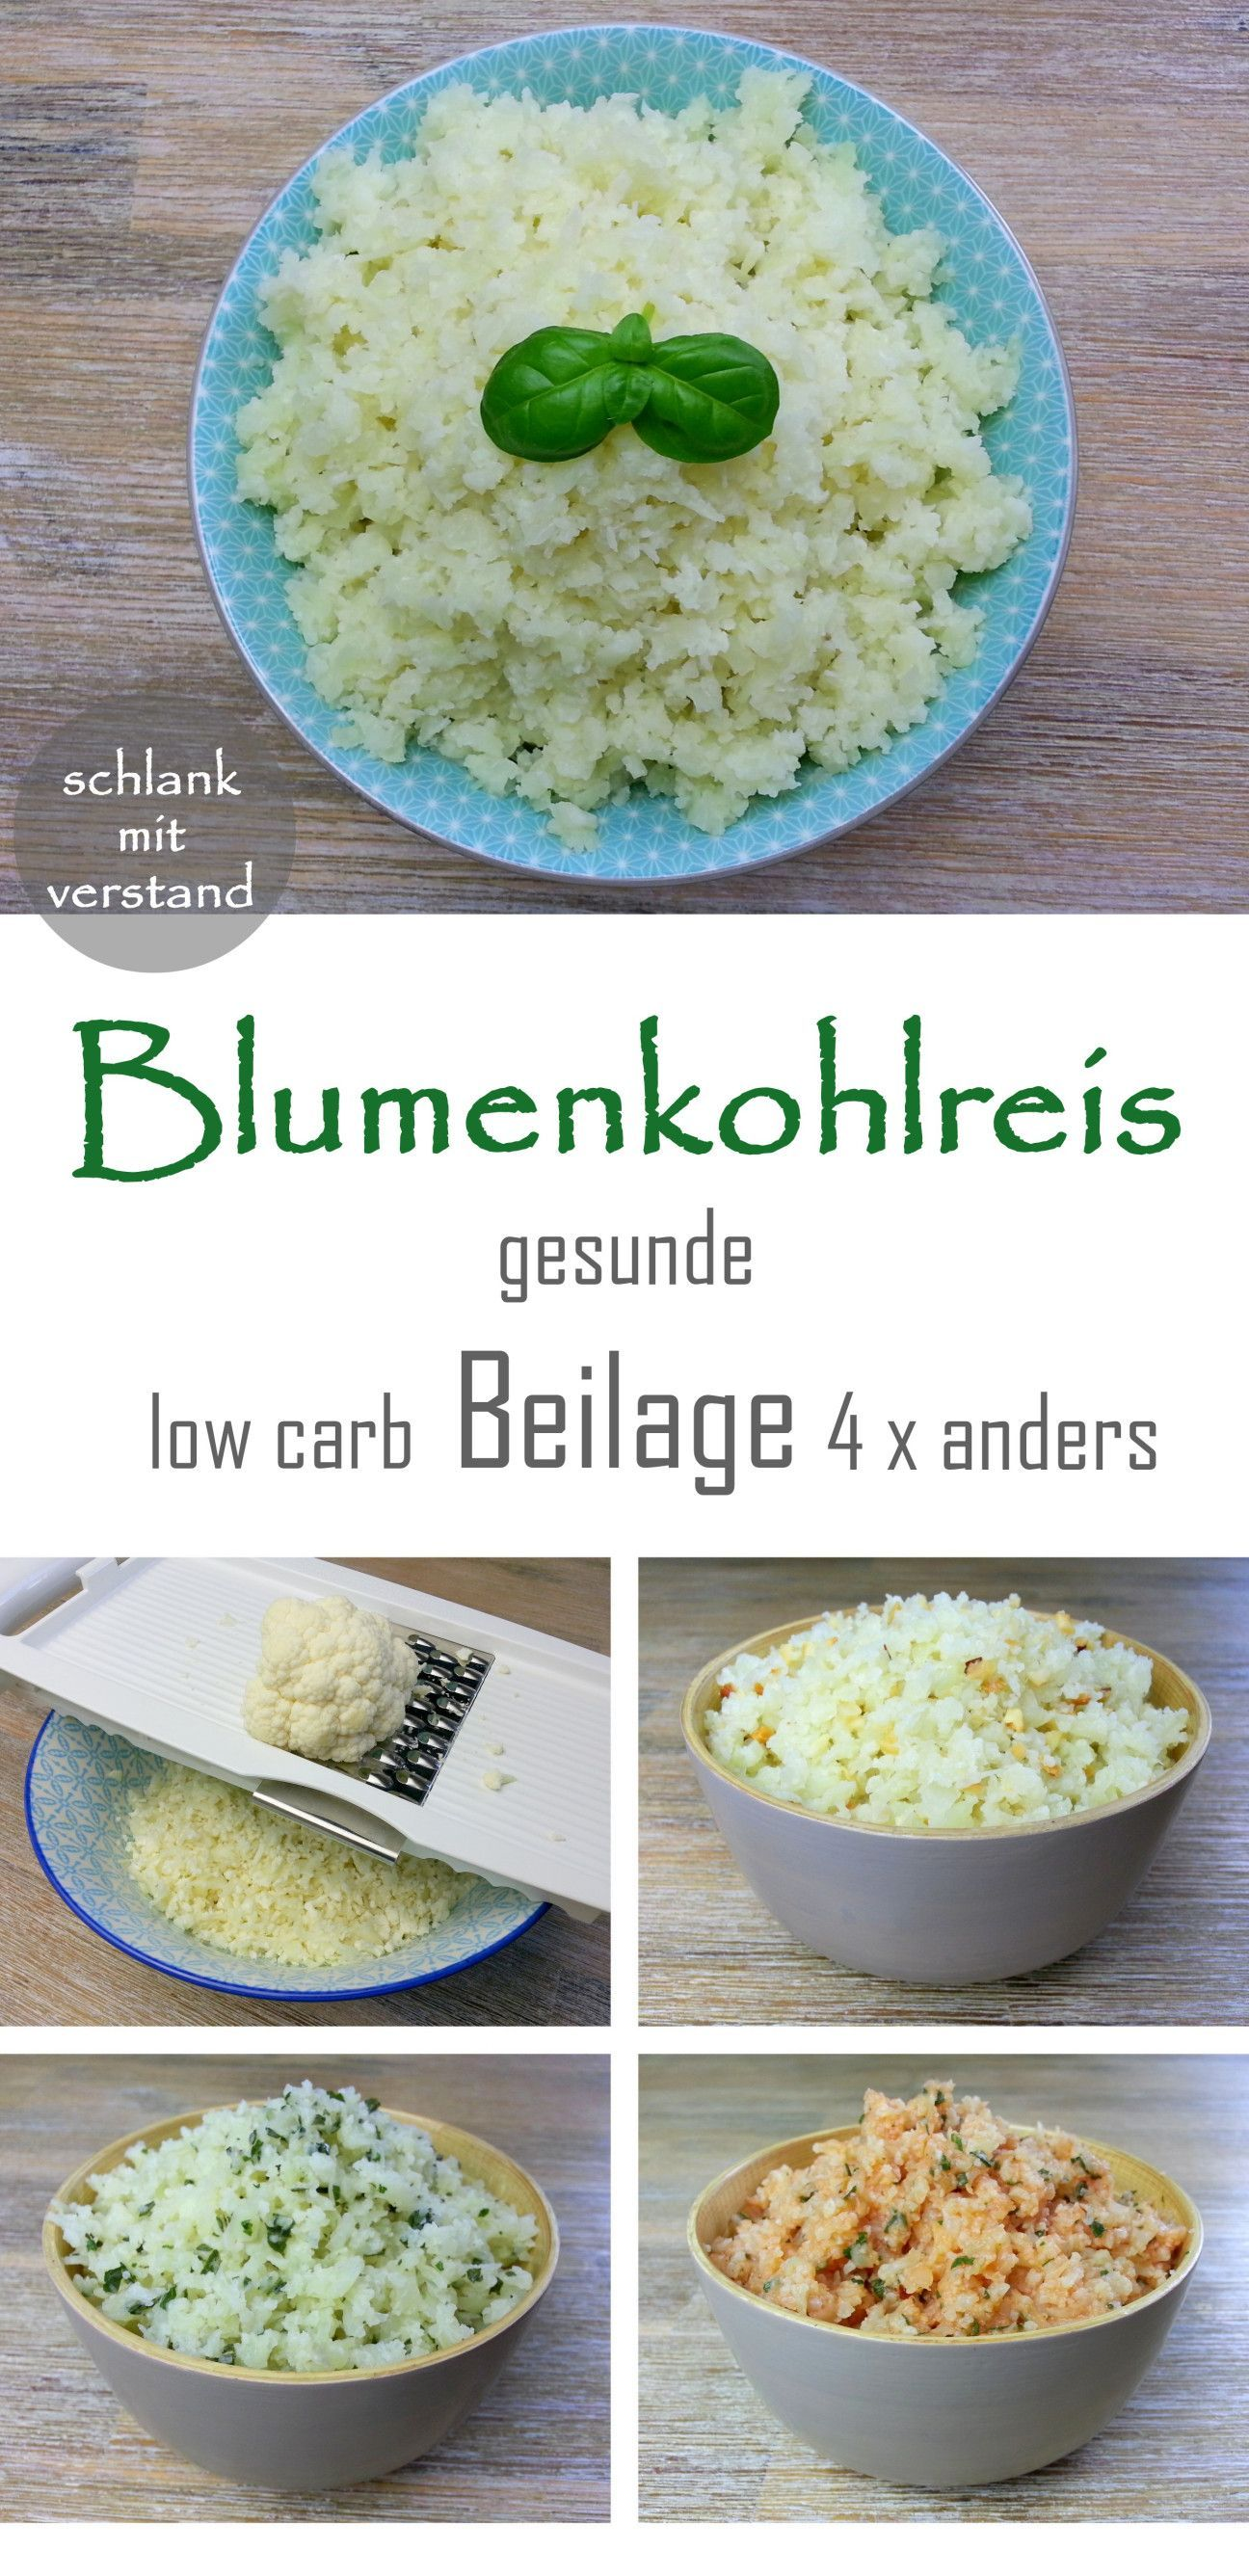 Photo of low carb Blumenkohlreis